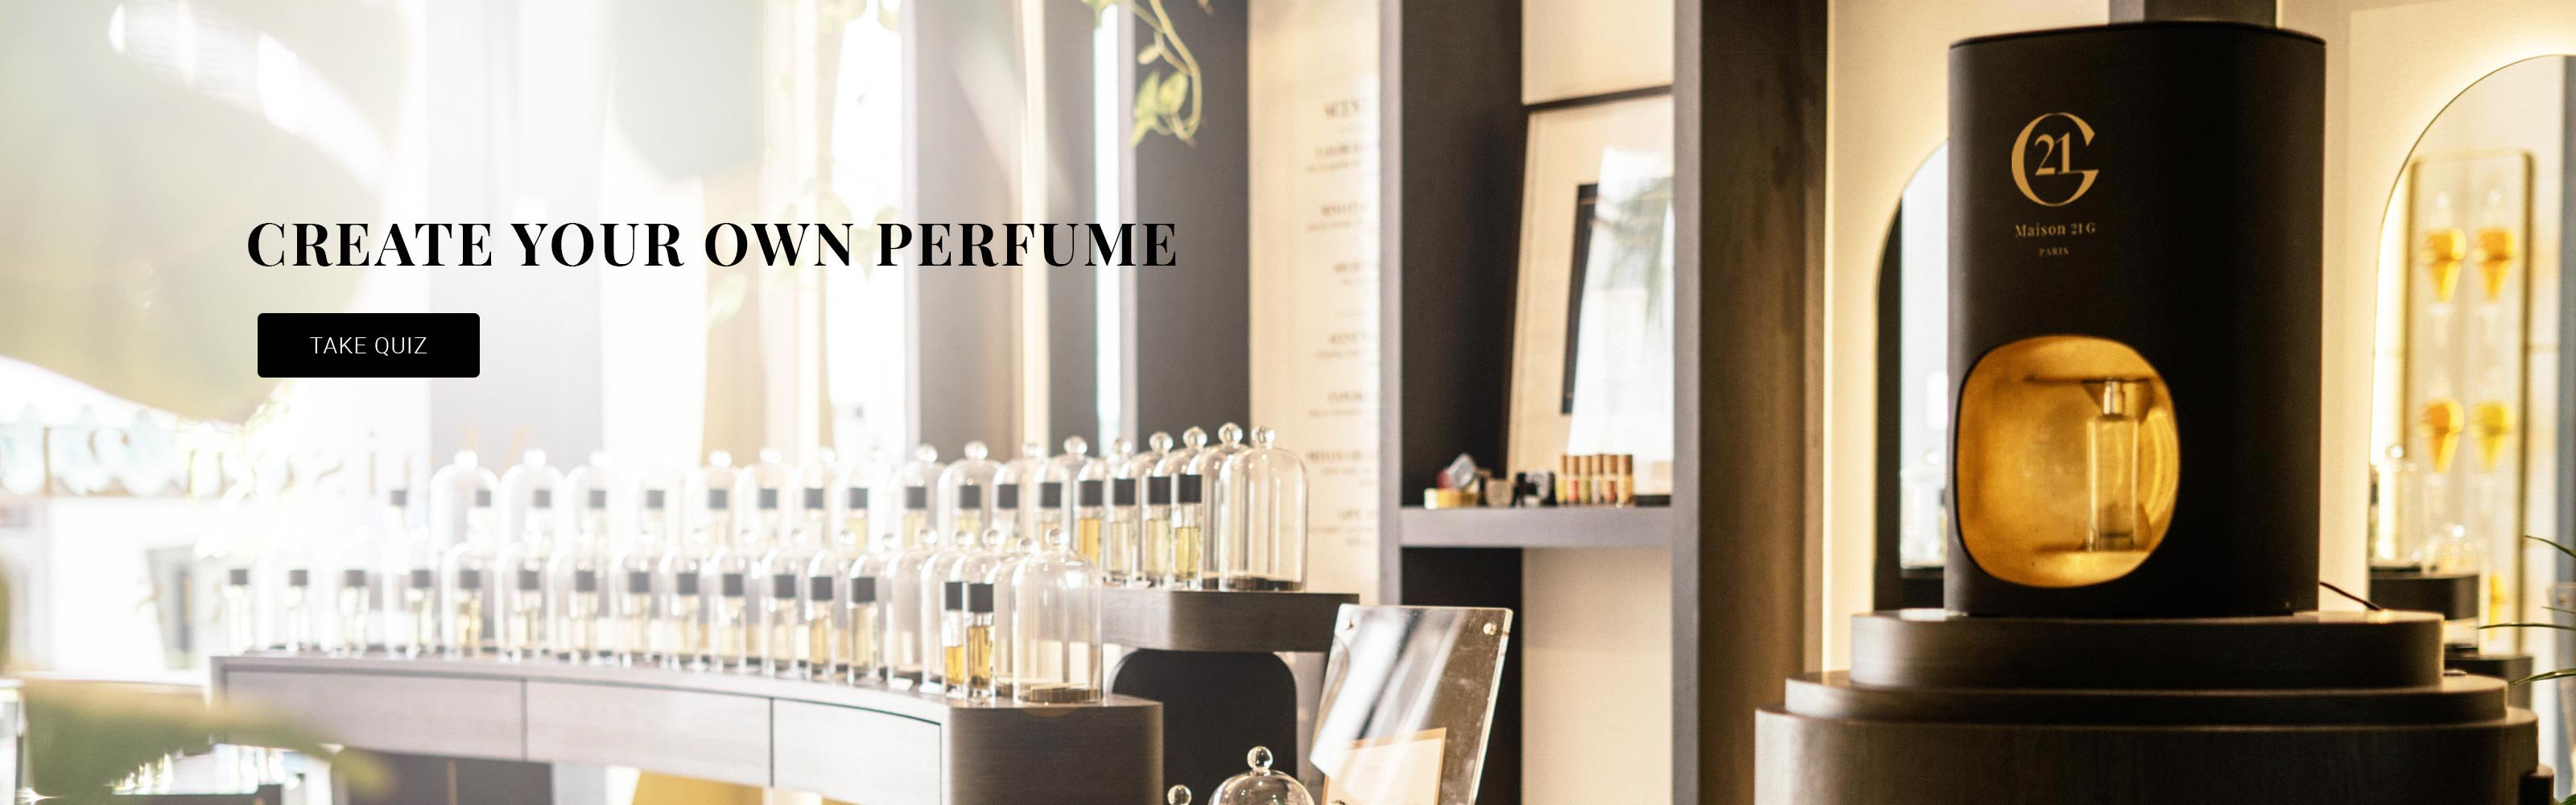 Maison 21G - Create Your Own Perfume